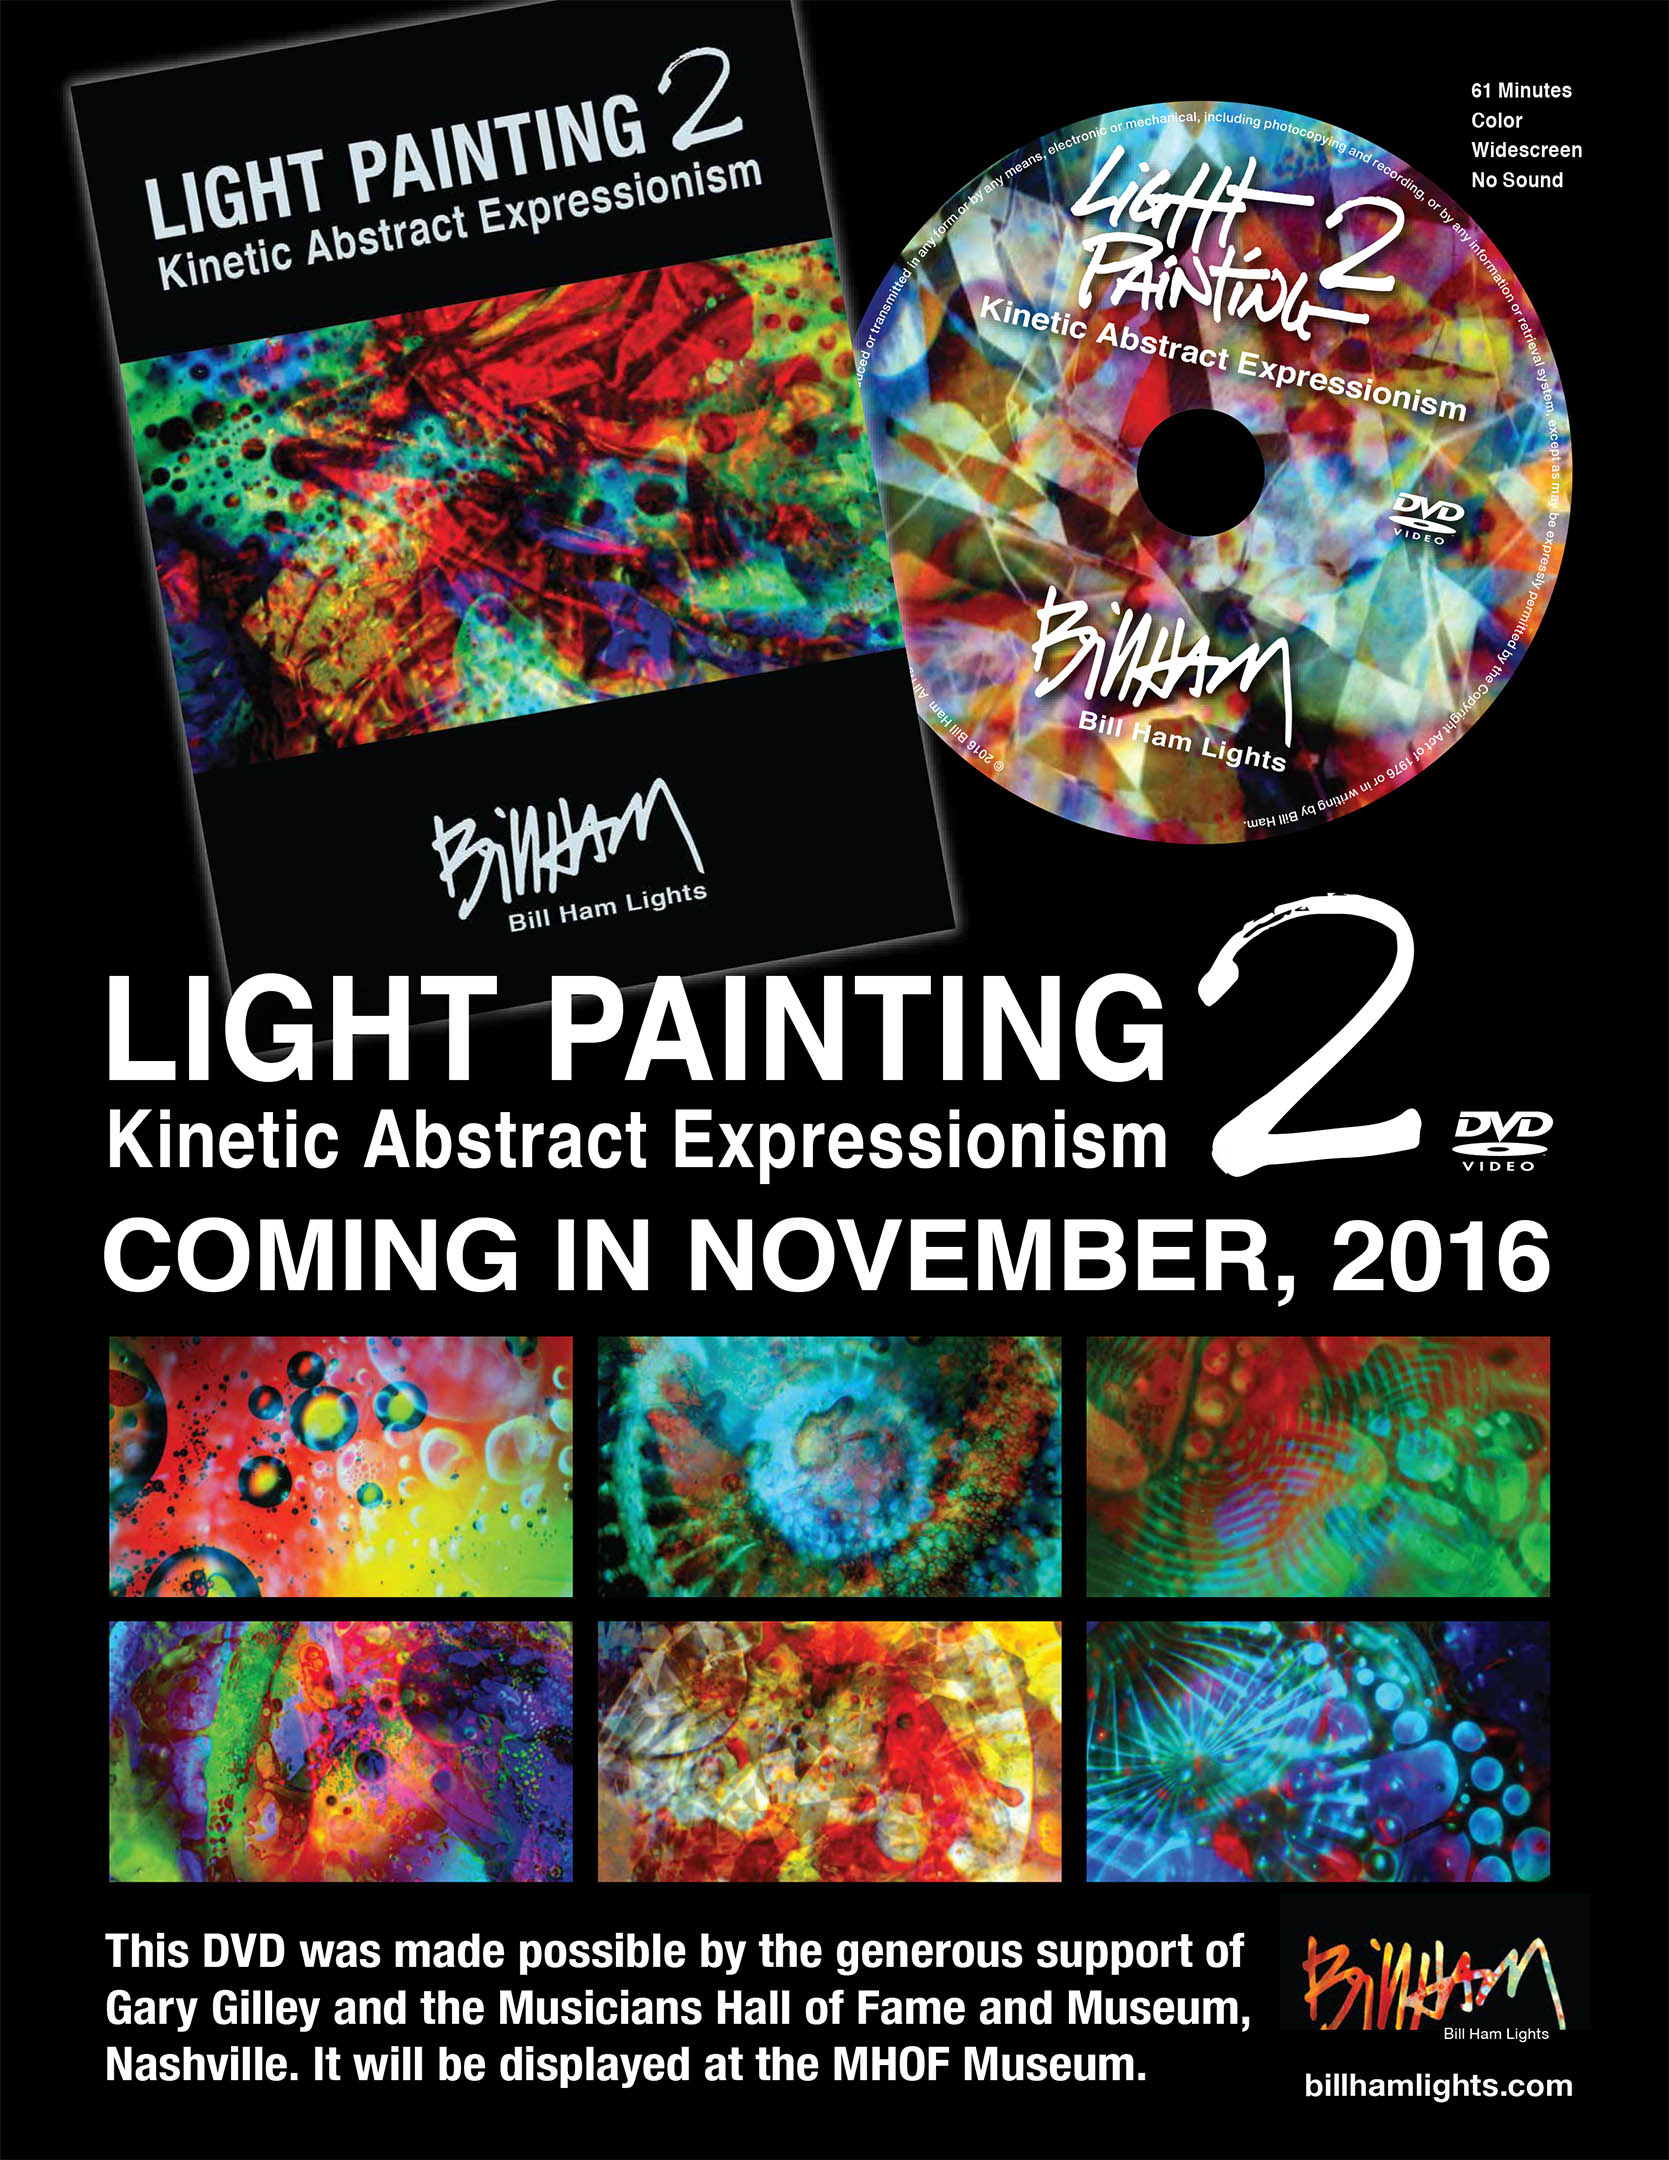 Light Painting 2 DVD is coming in November 2016